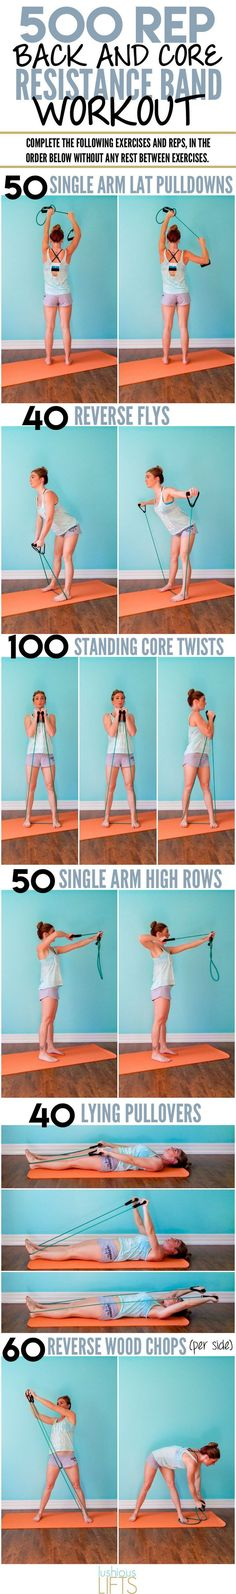 500 rep back and core resistance band workout - Fitness Fitness Workouts, Fitness Motivation, Sport Fitness, Pilates Workout, At Home Workouts, Fitness Tips, Health Fitness, Fitness Plan, Yoga Fitness